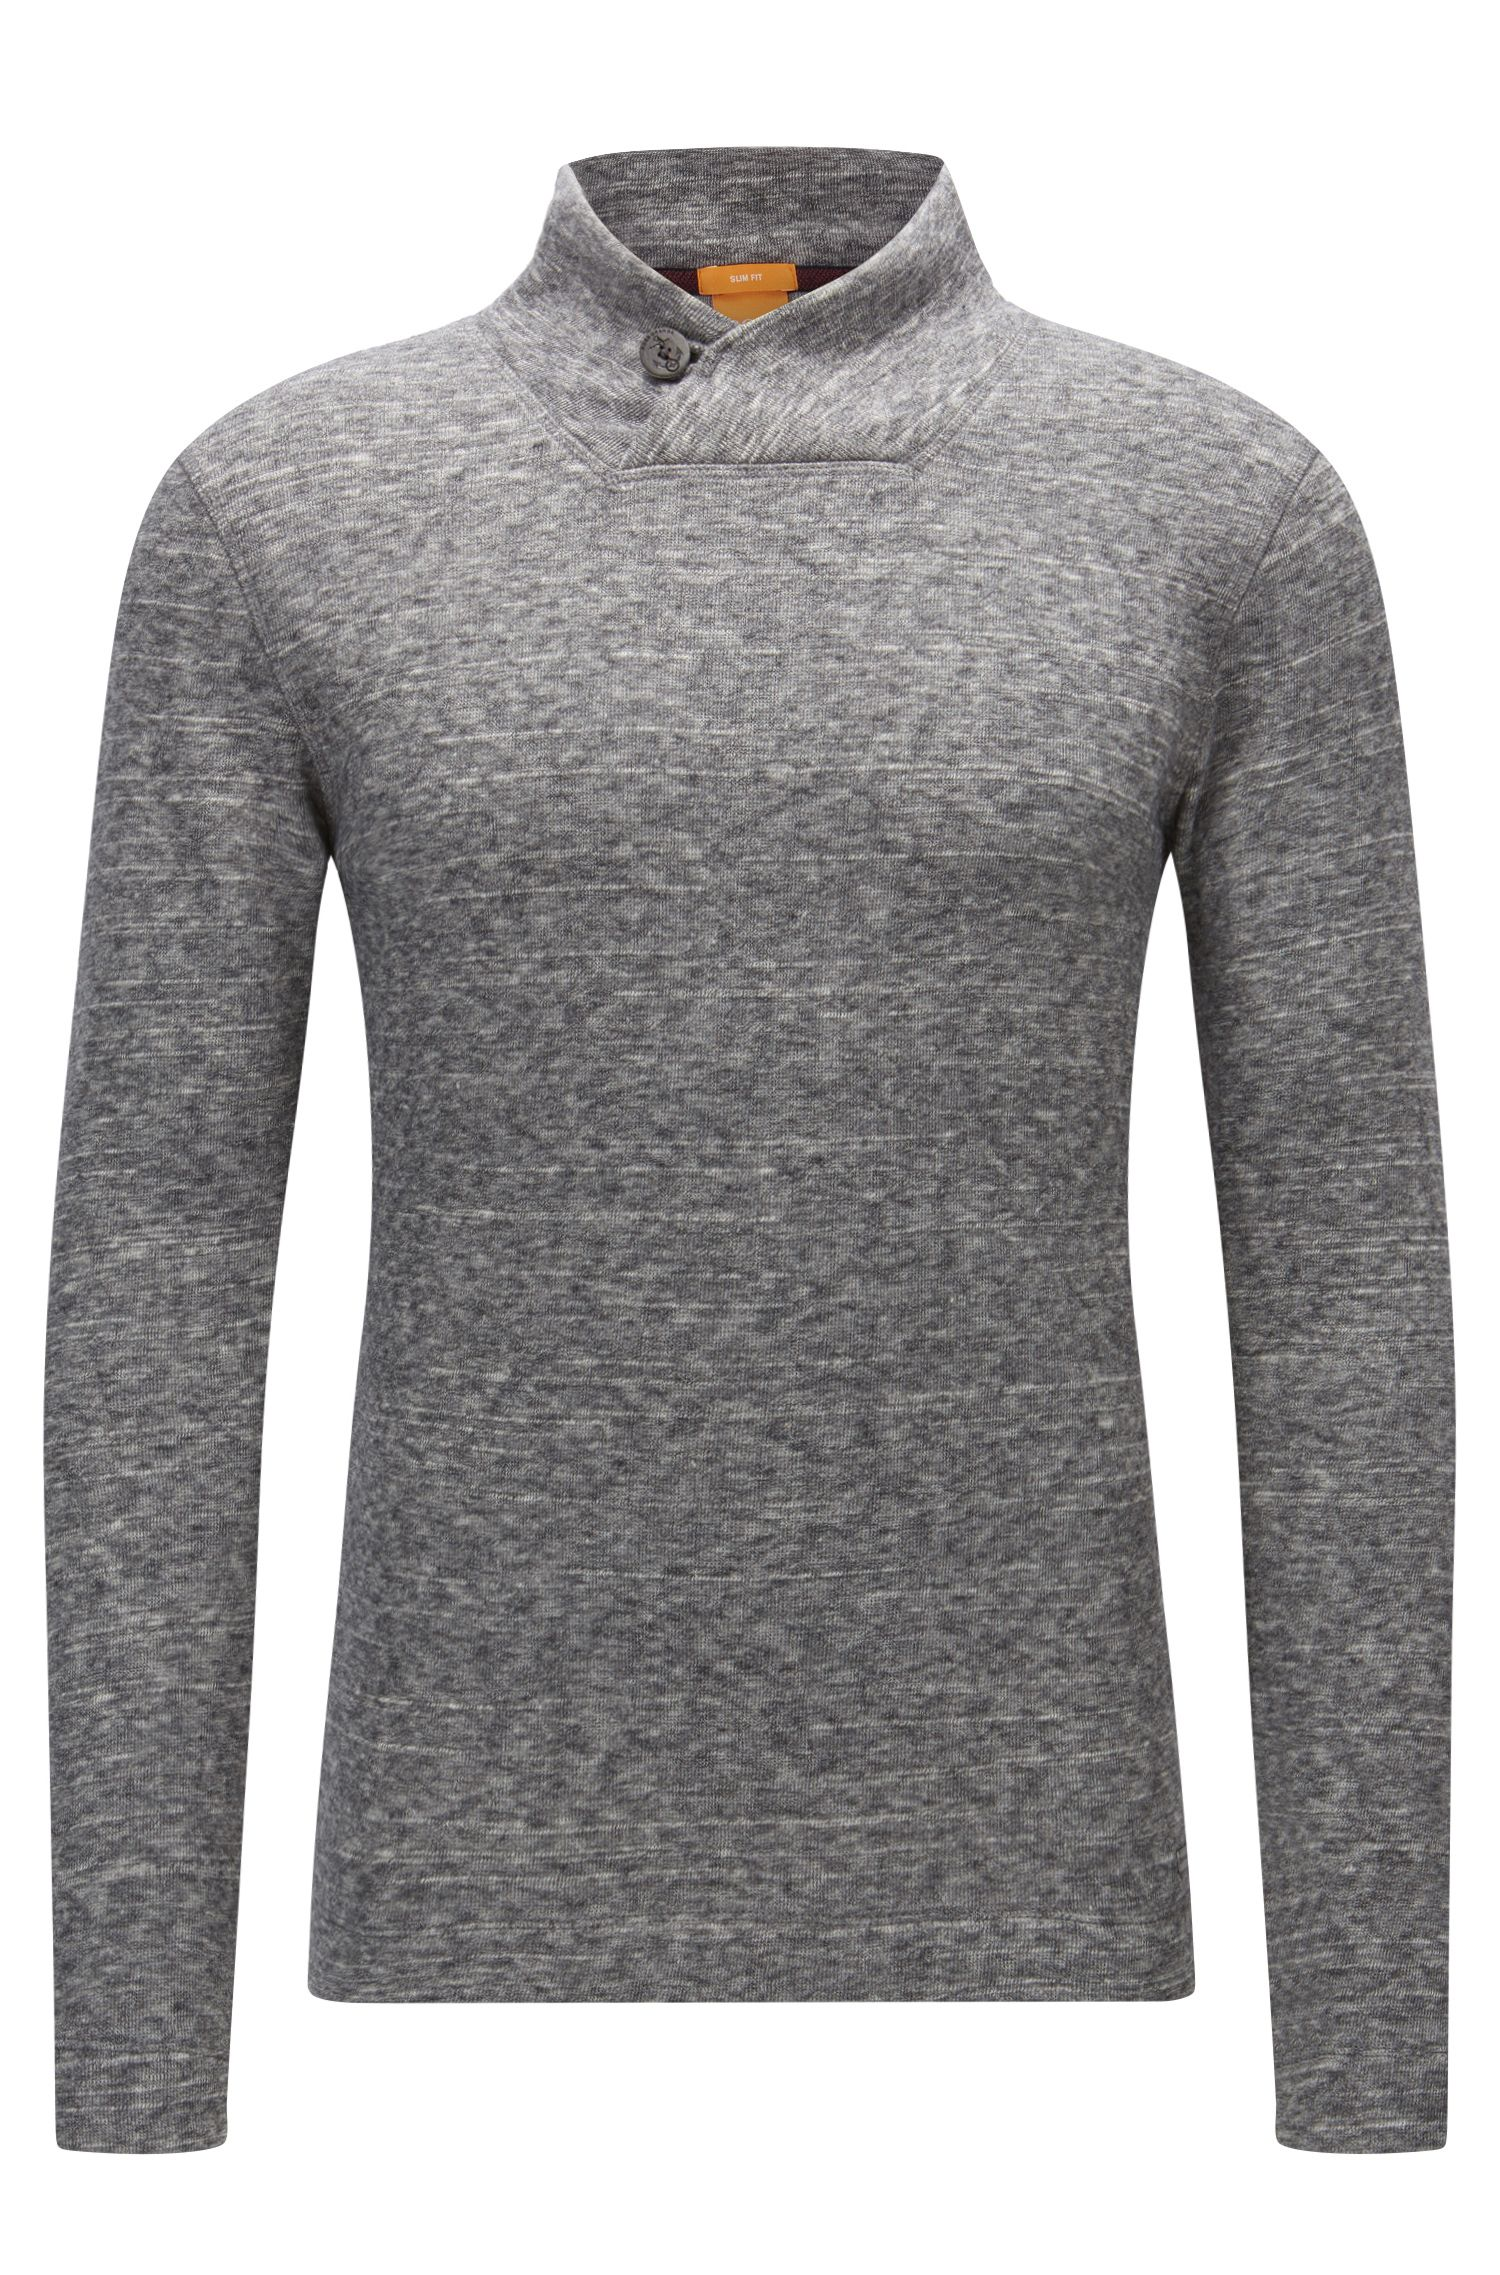 Button-collar sweater in double-faced jersey